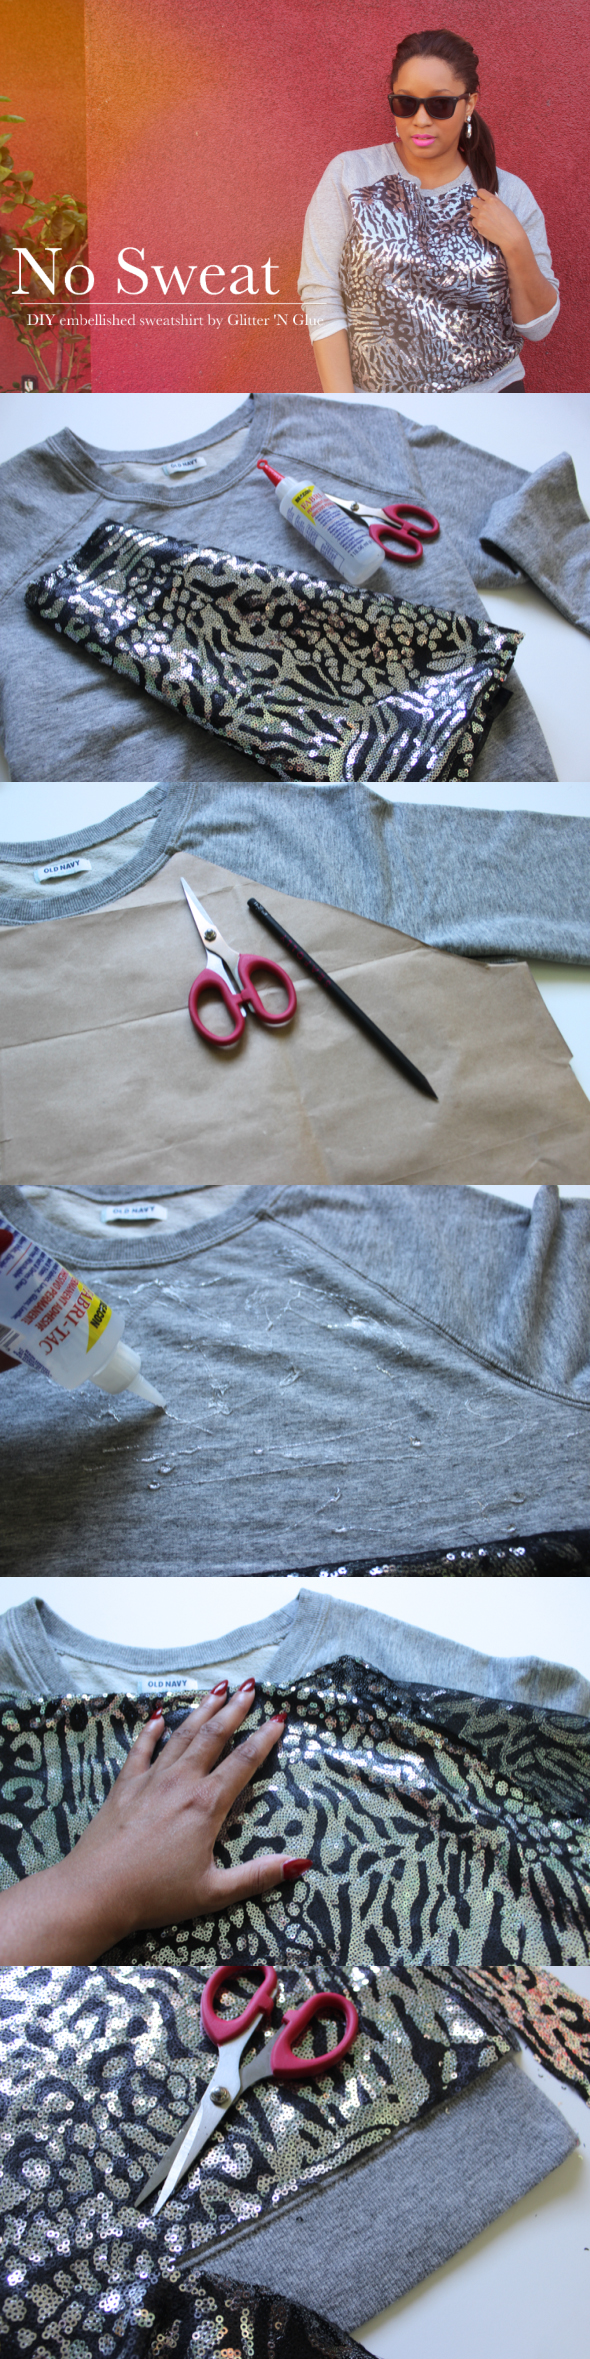 Embellished Sweatshirt DIY